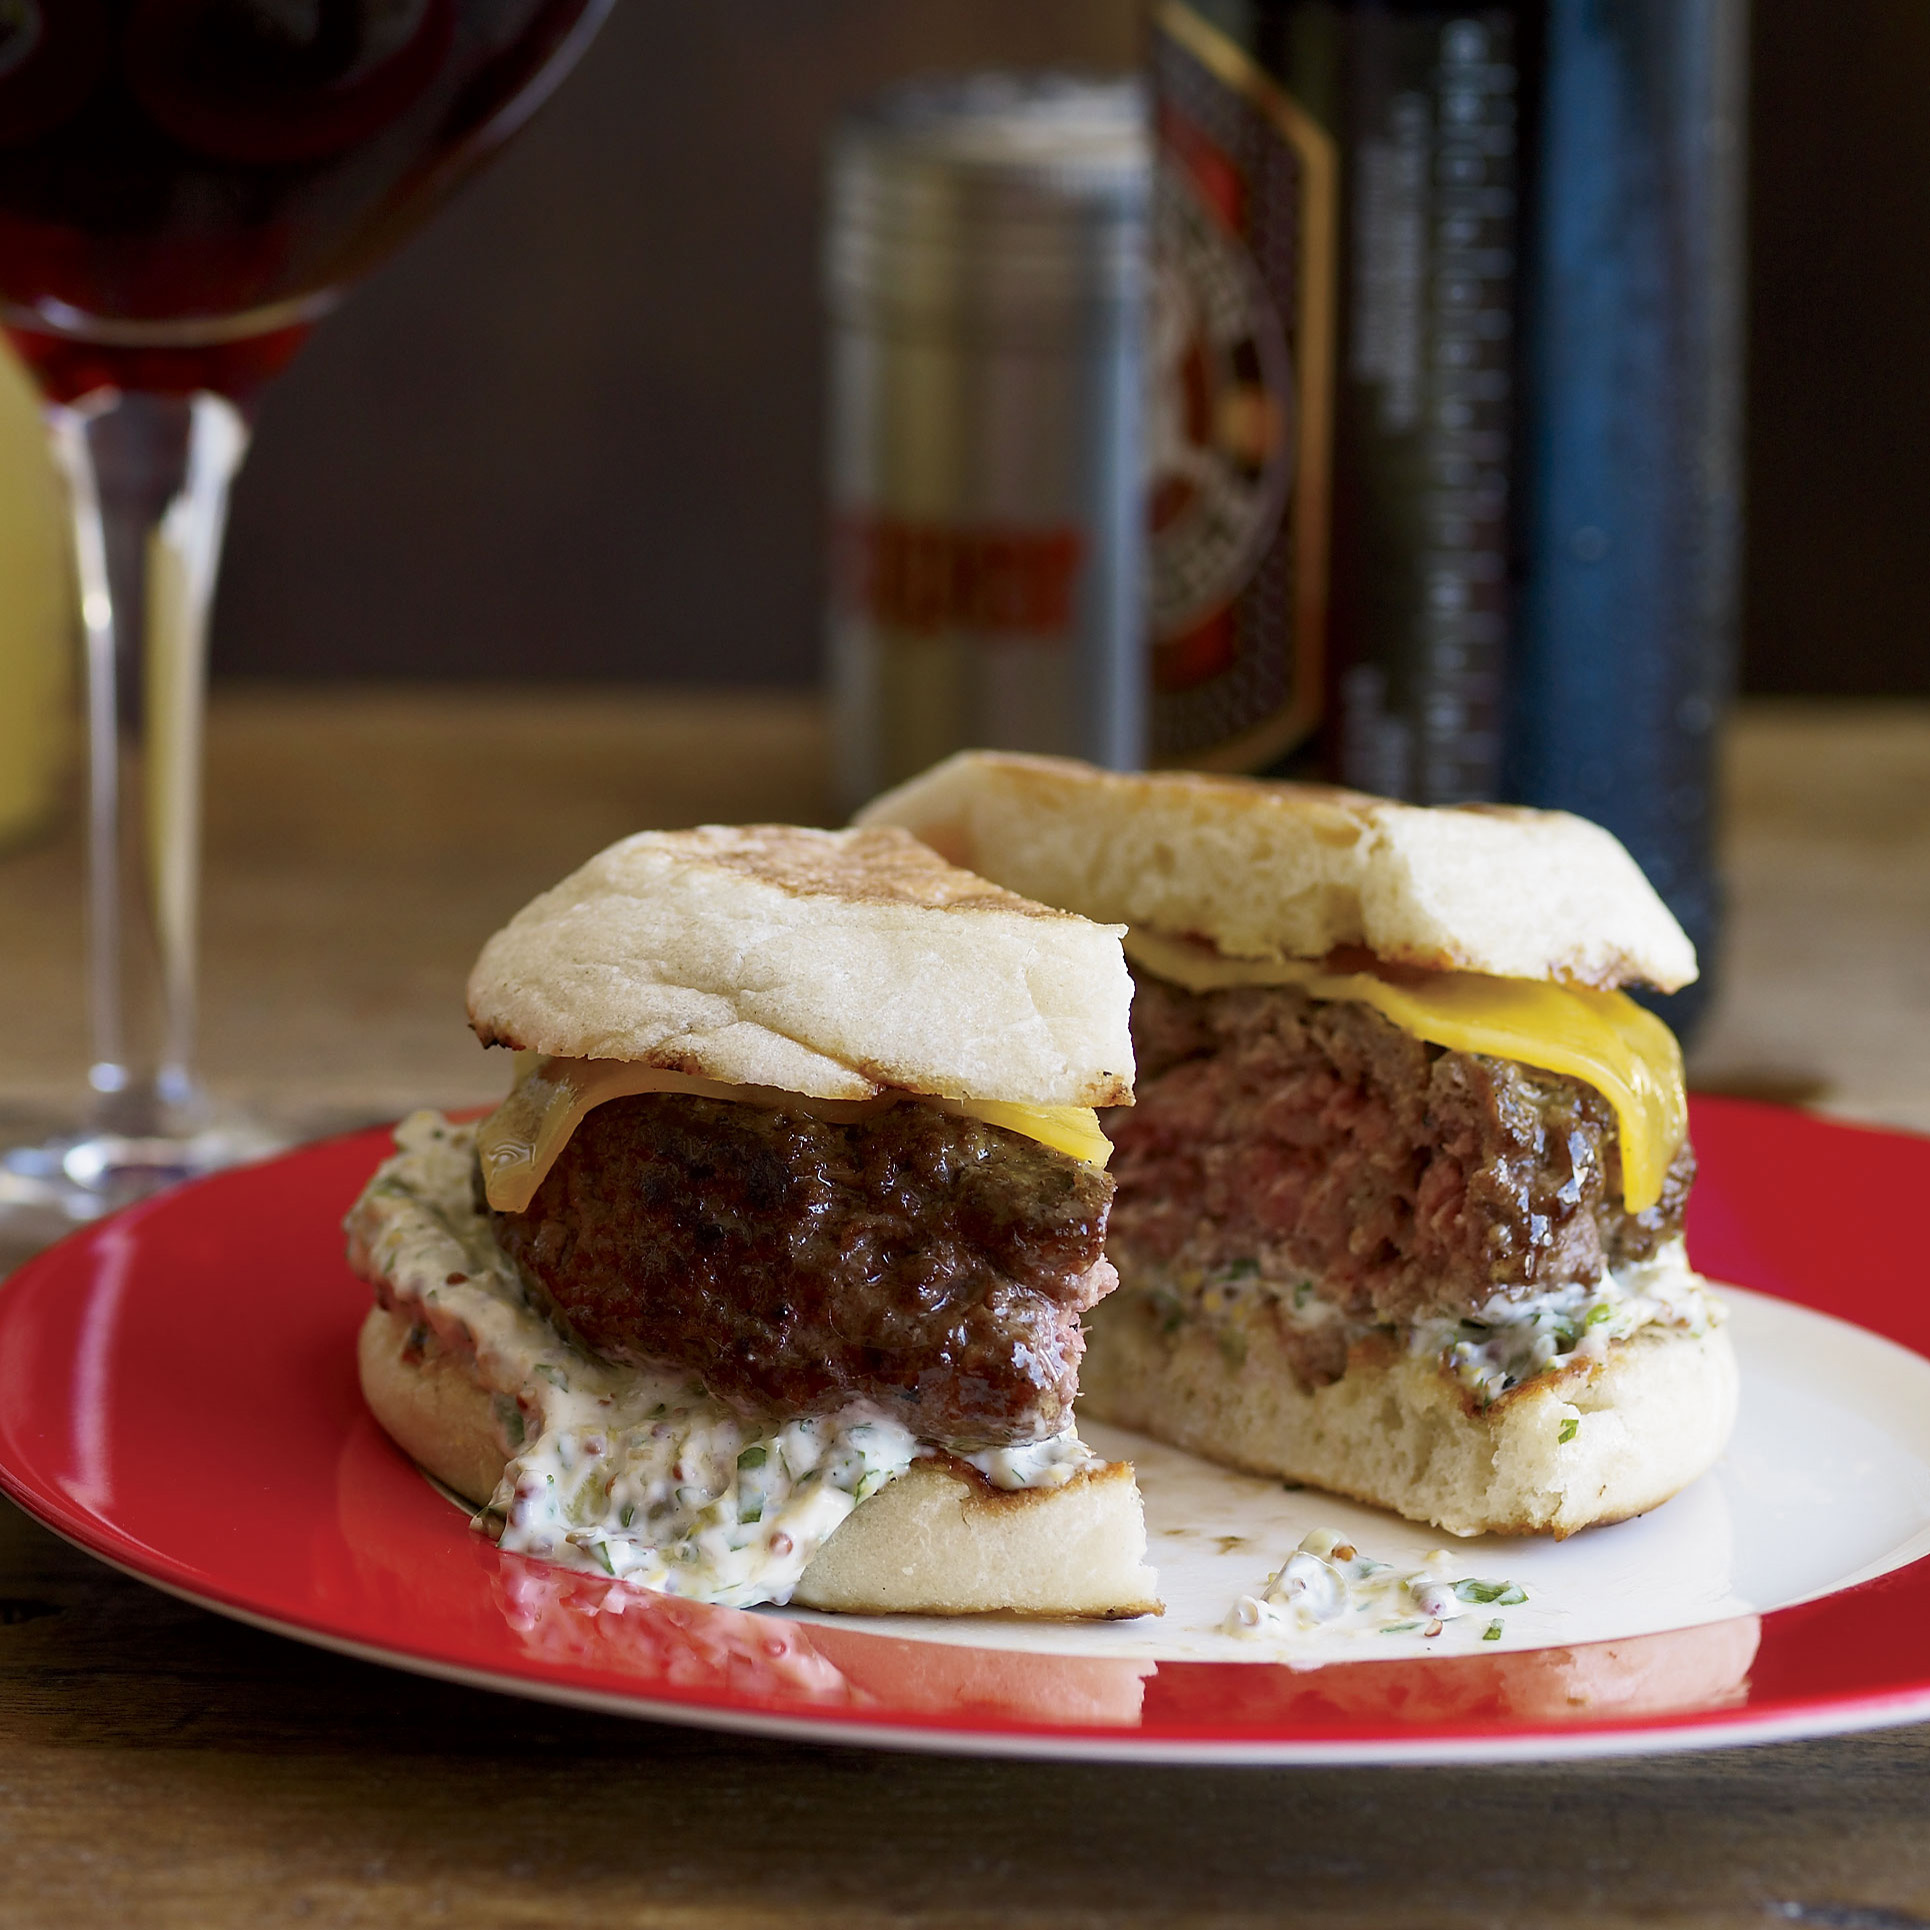 200806xl-beef-and-lamb-burgers-with-cheddar-and-caper-remoulade